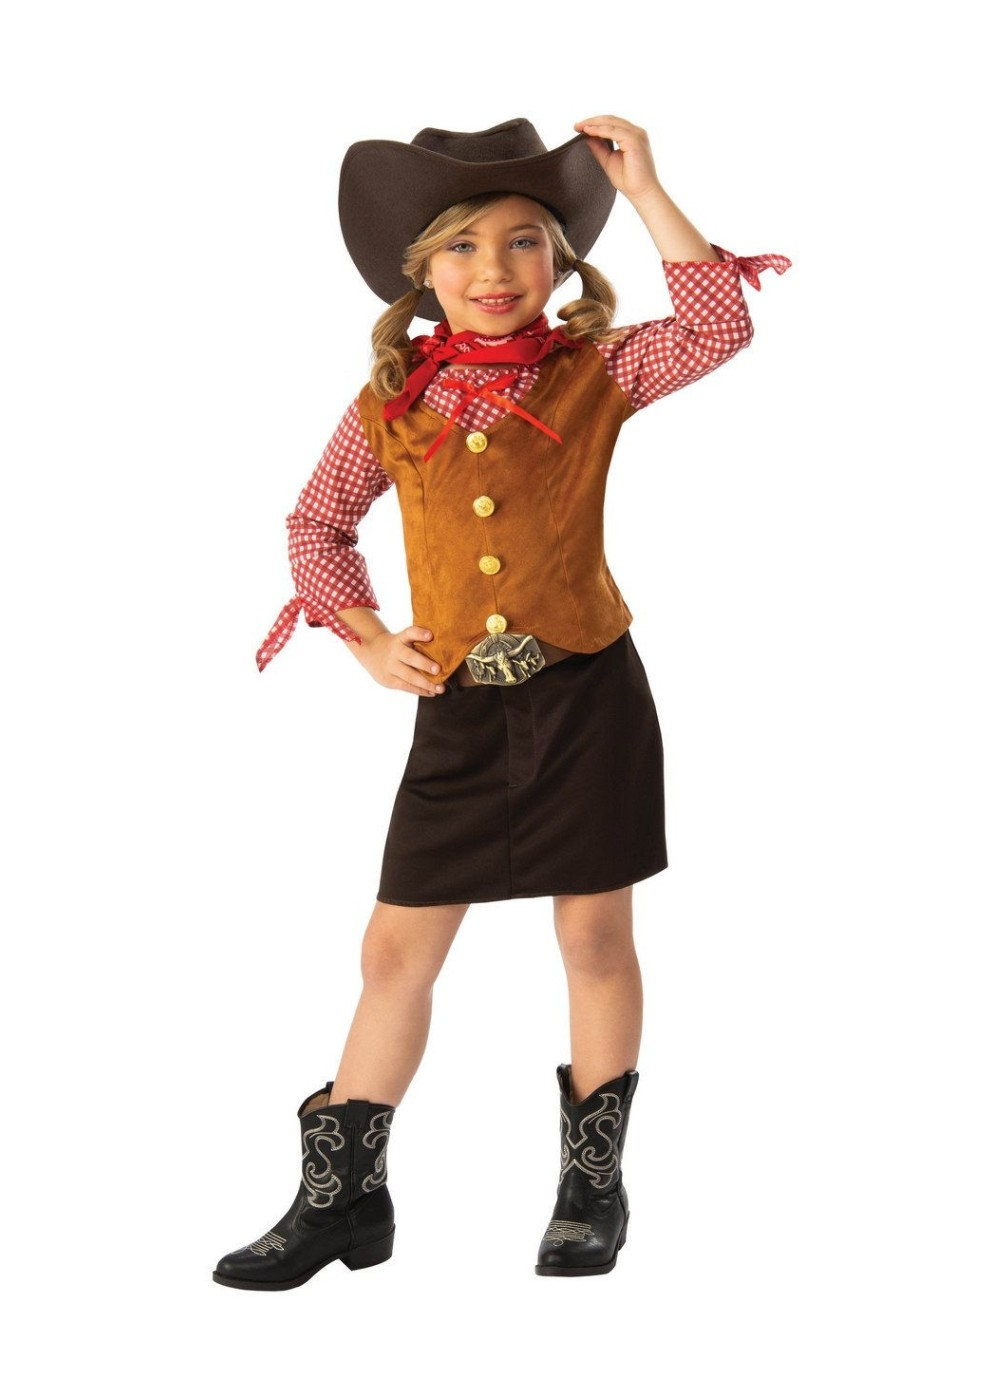 Wild Western Girl Costume - Cowgirl Costumes - New for 2018